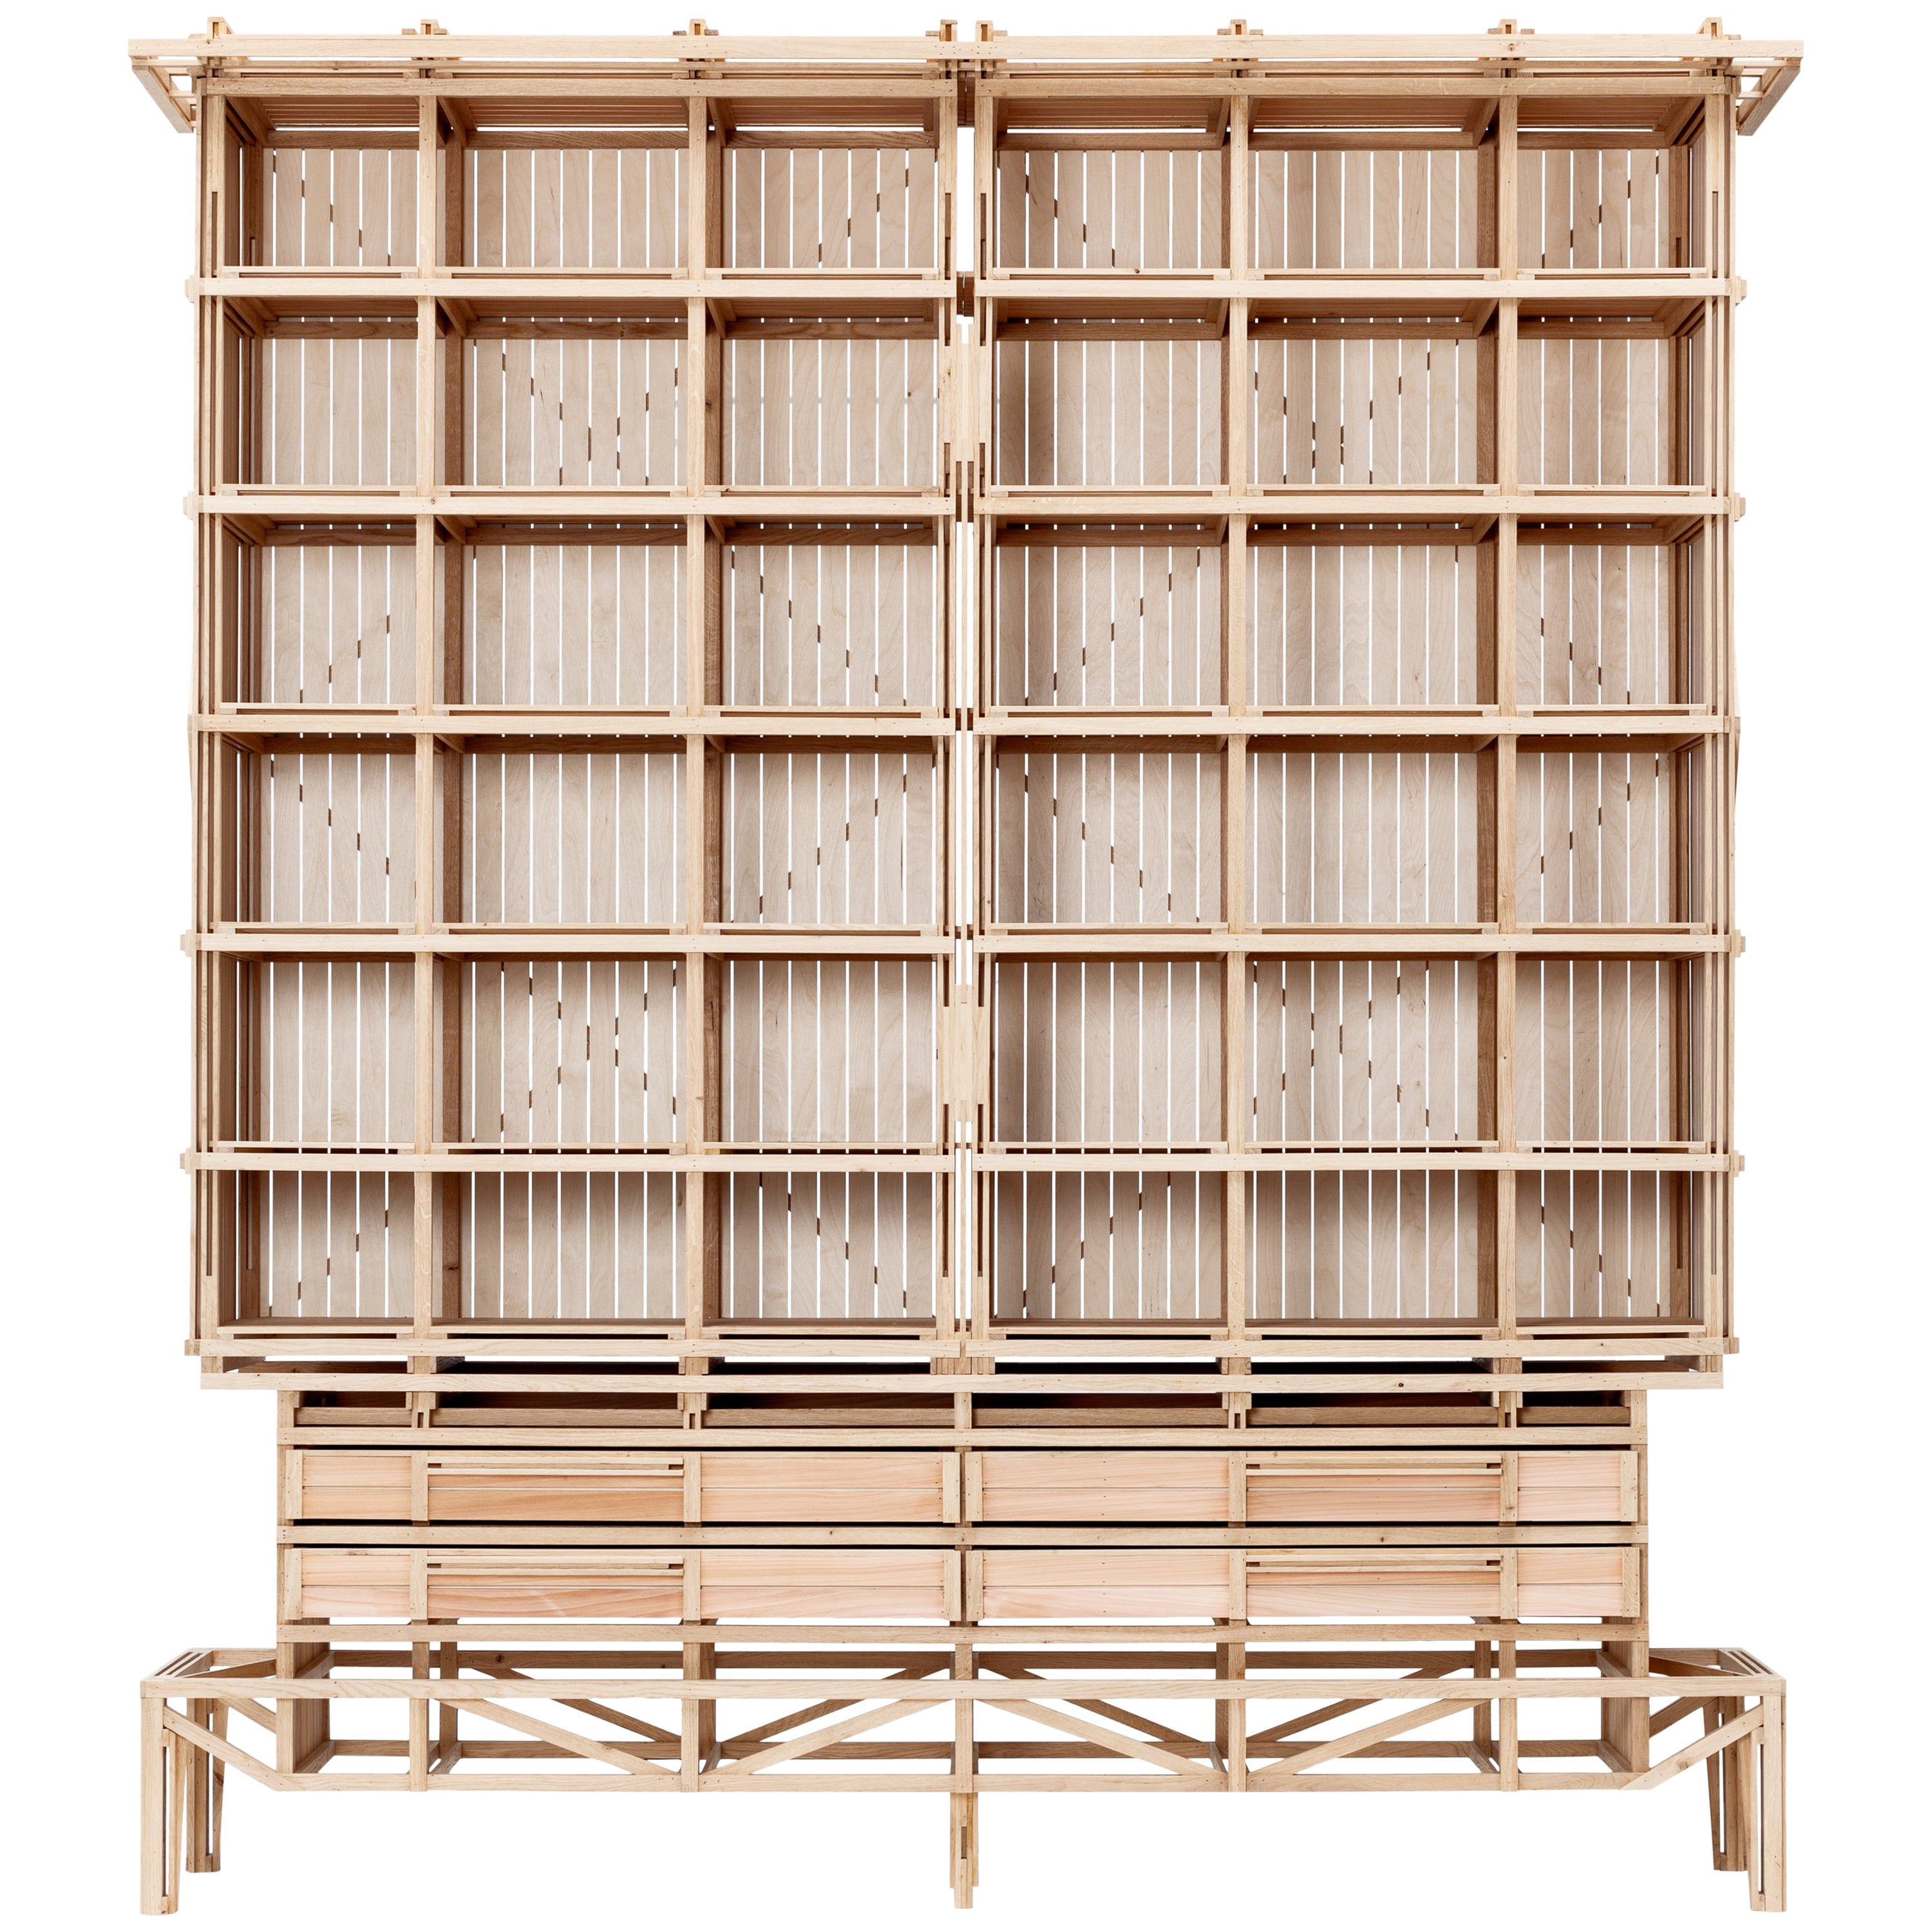 Cathedral Cabinet by Paul Heijnen, Handmade in Netherlands